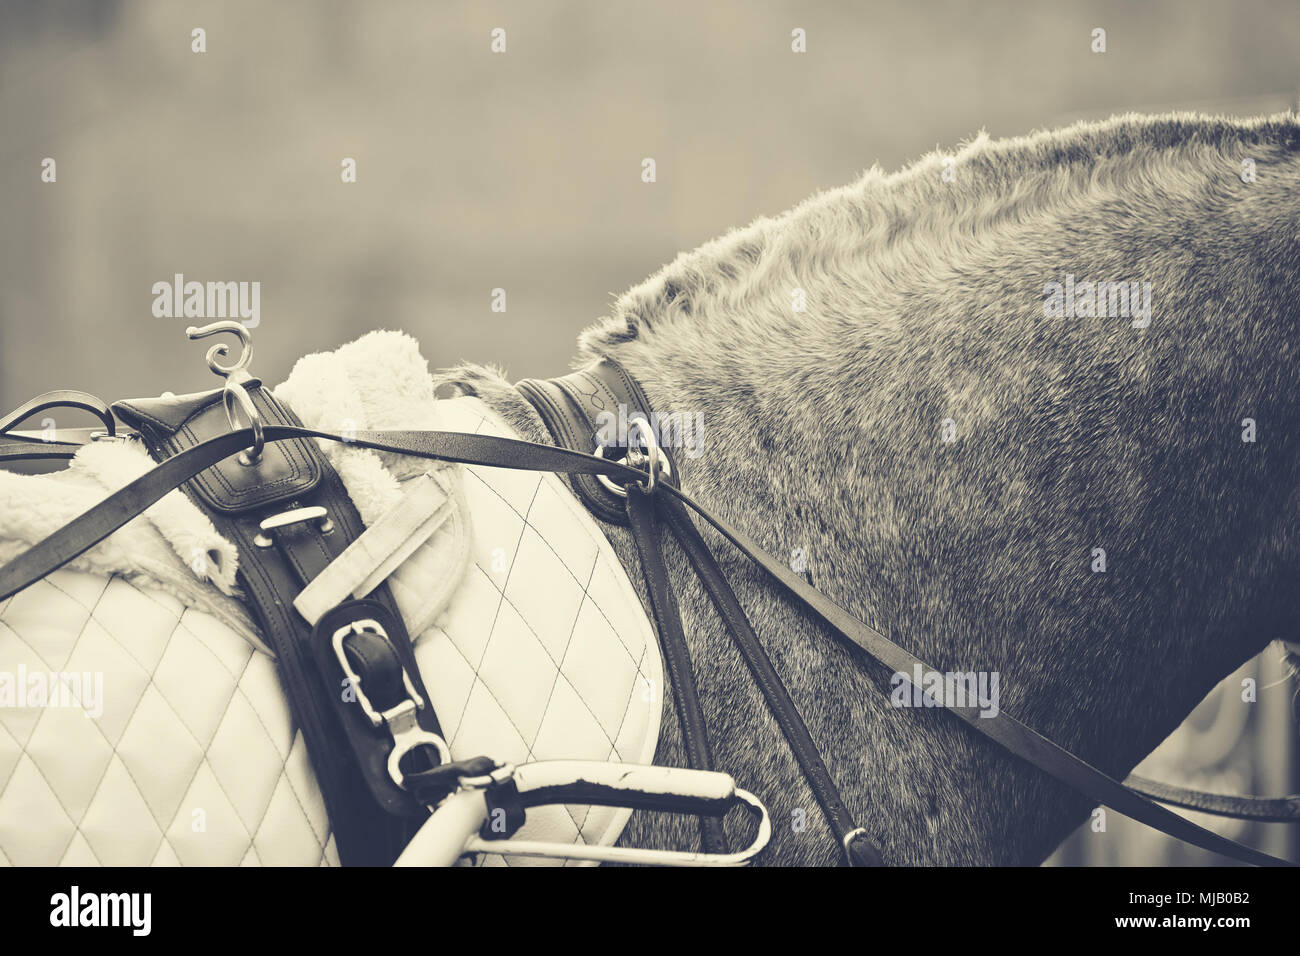 Horse-drawn transport. Neck of the gray horse harnessed in the carriage. - Stock Image